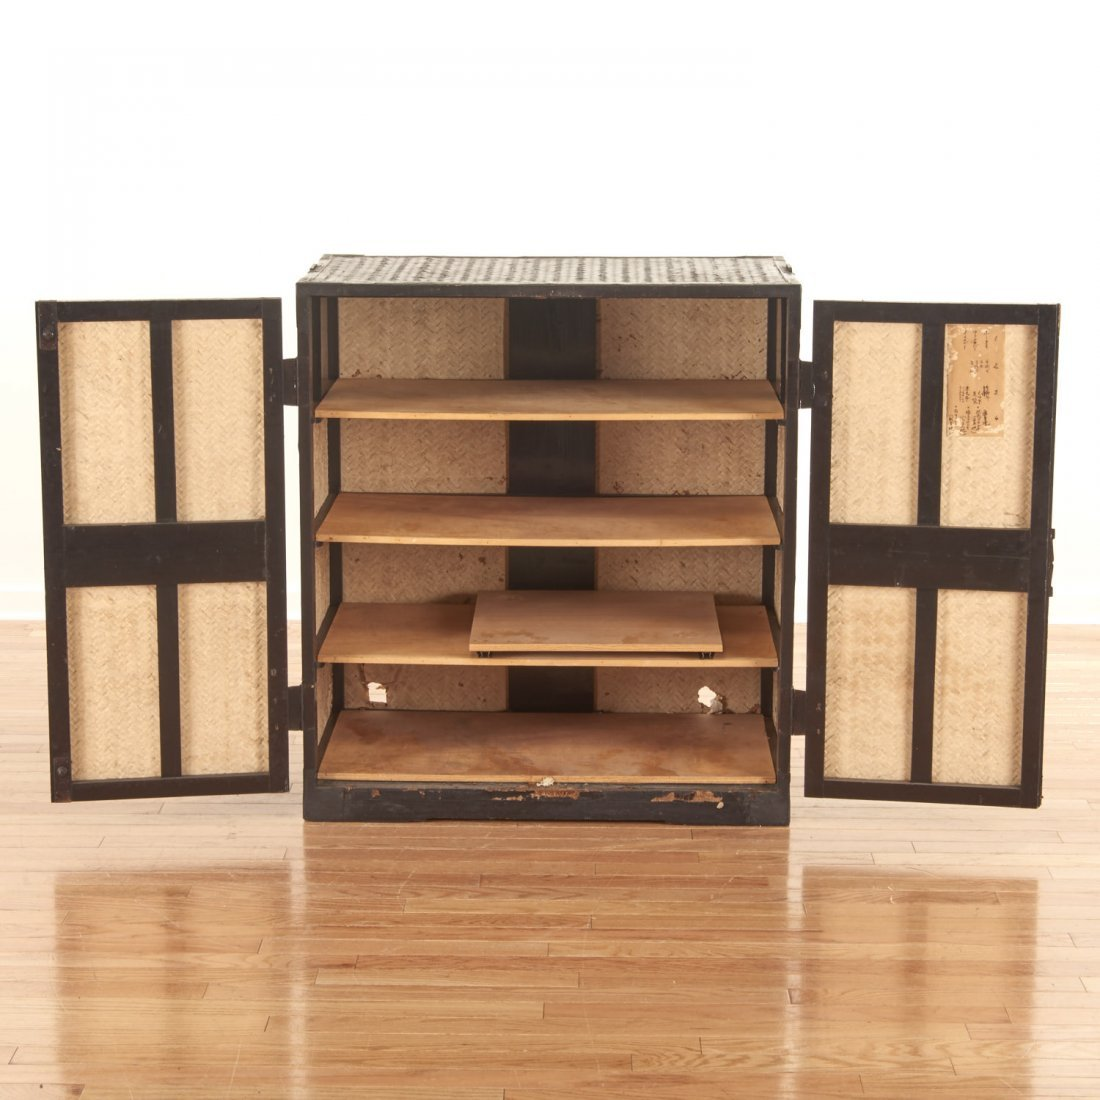 Japanese black painted rattan traveling chest - 7